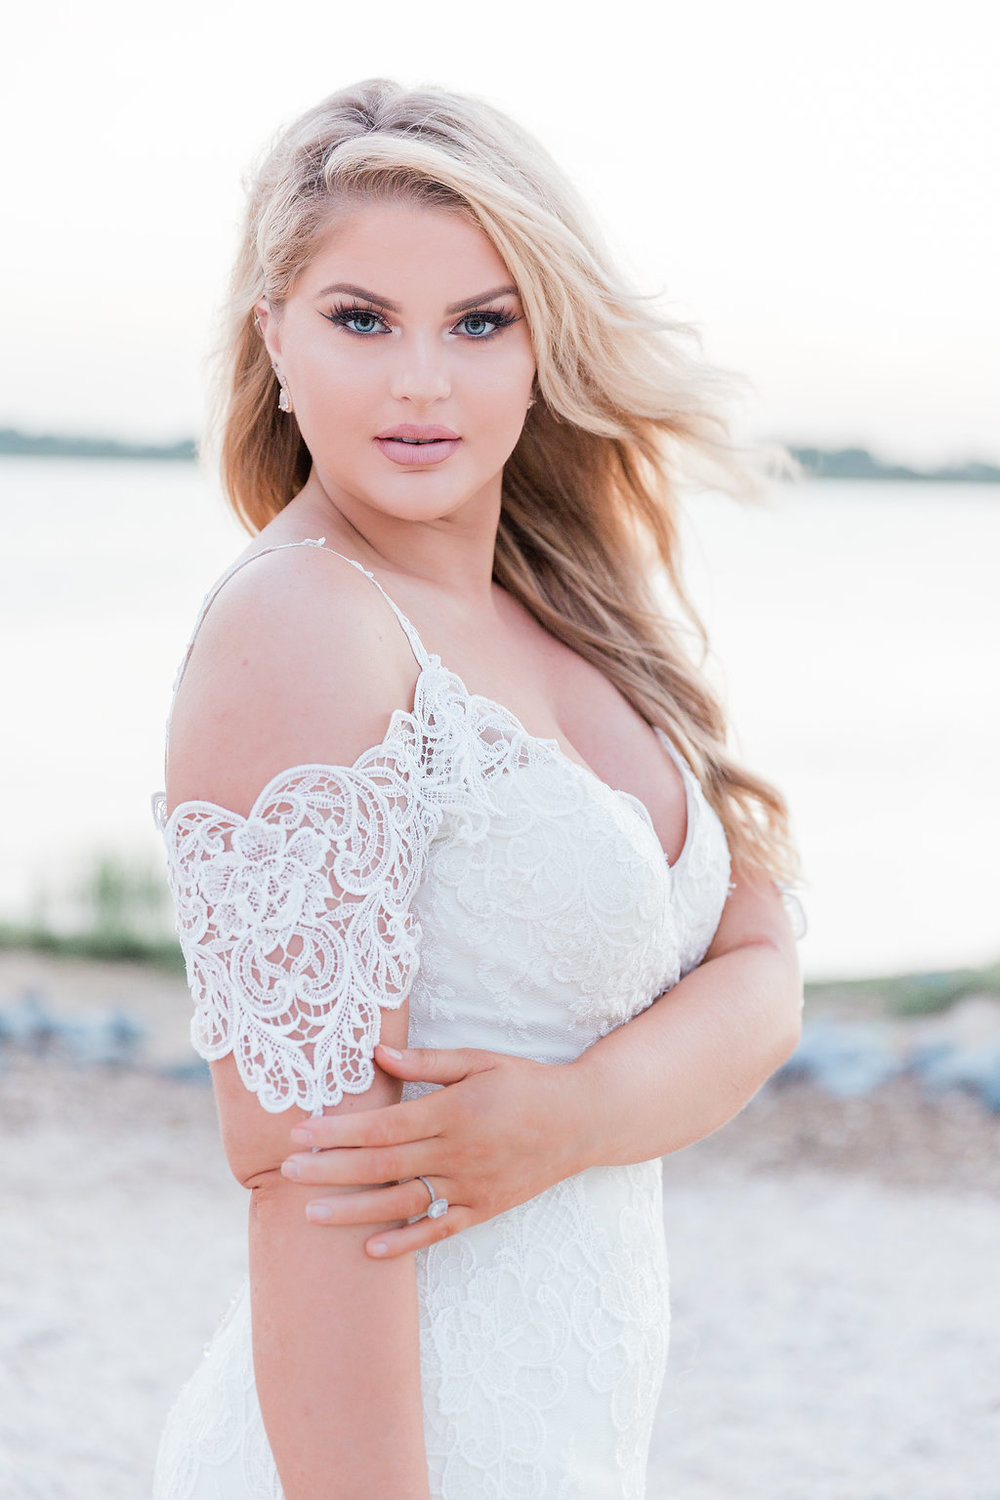 savannah-bridal-shop-beachy-bridal-glam-beach-wedding-looks-and-inspiration-southern-lens-photography-maggie-sottero-2.jpg